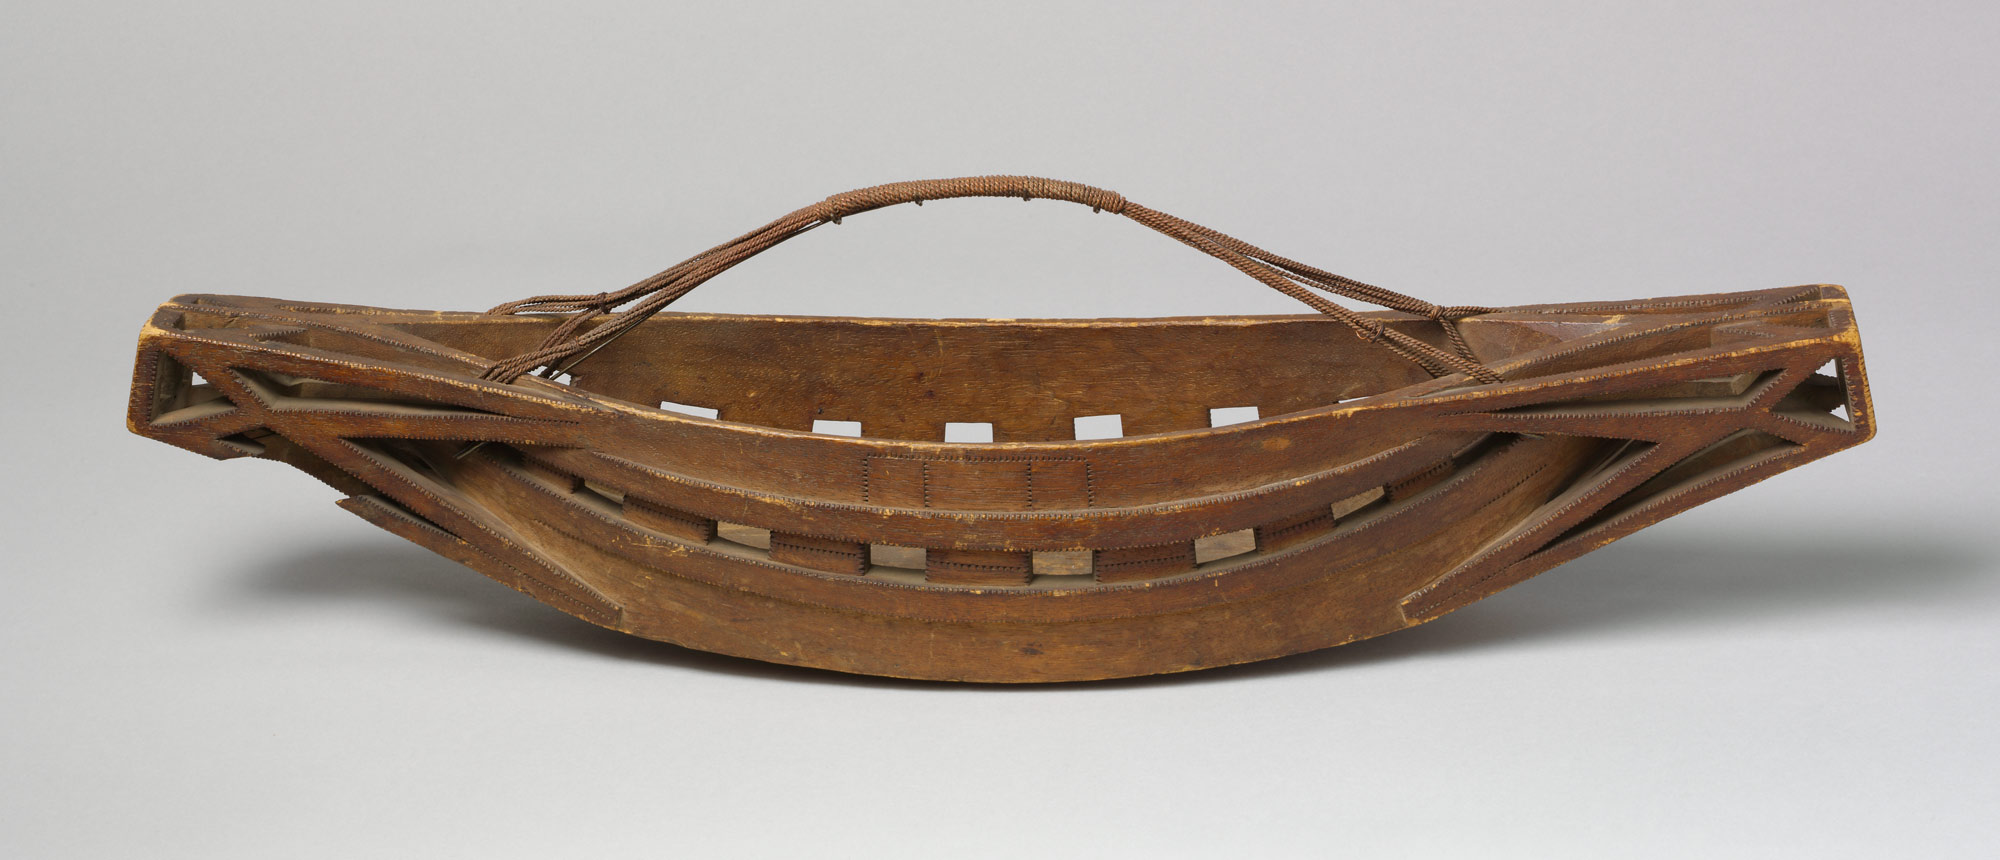 Carrying Bowl (Finola)